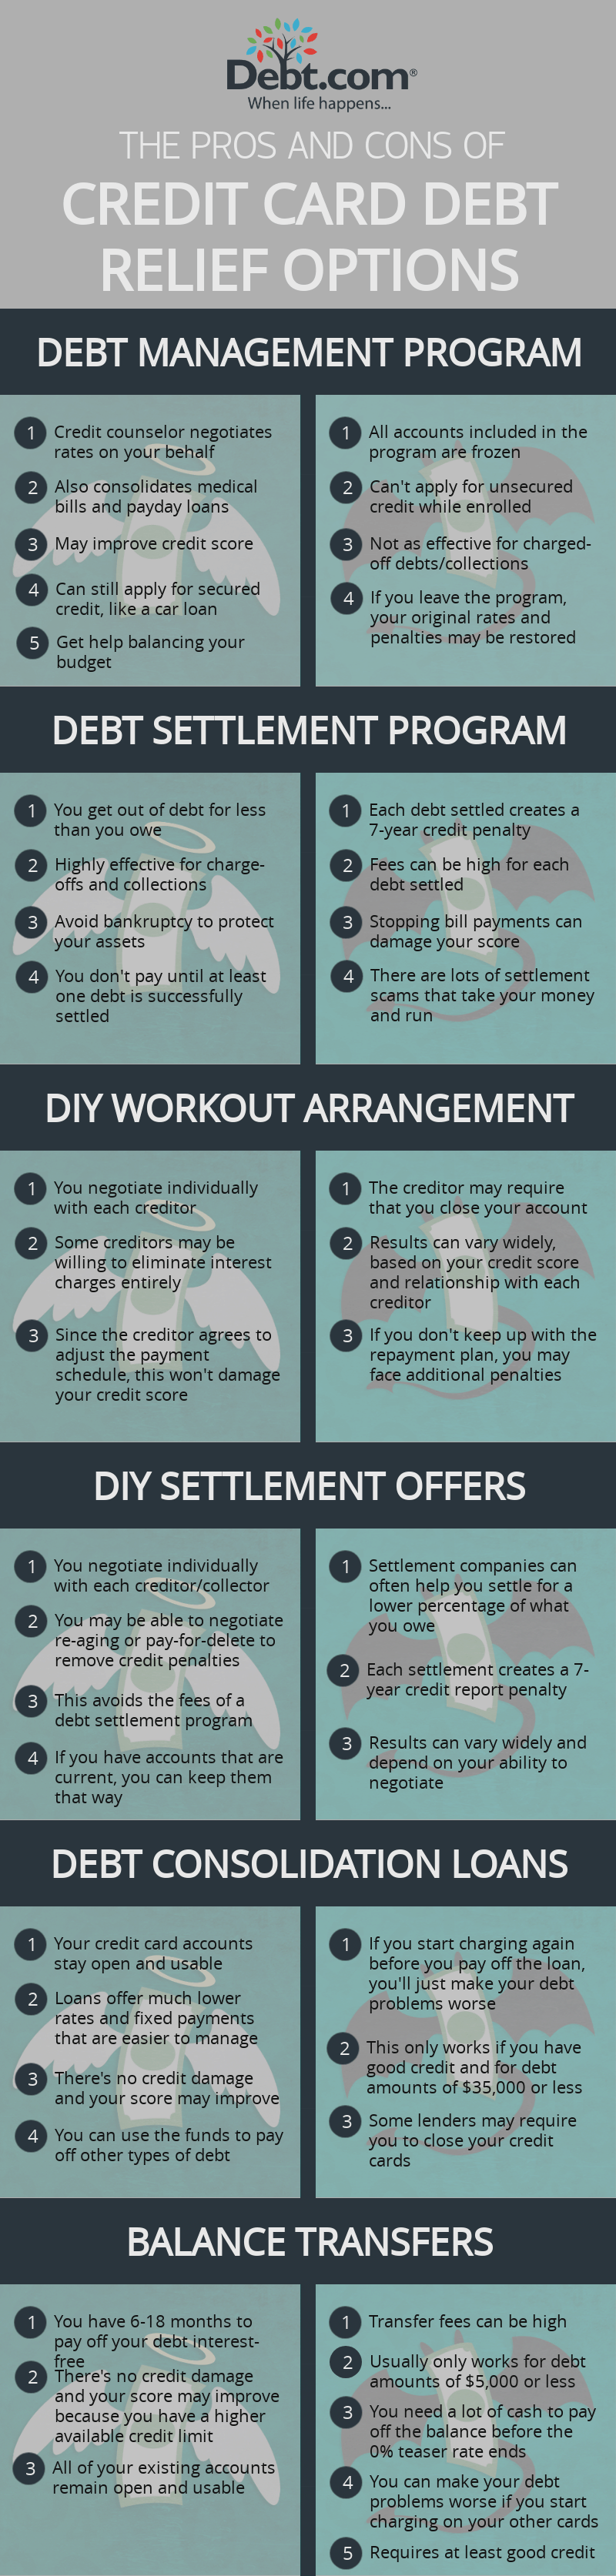 This infographic compares the pros and cons of debt relief programs and other do-it-yourself debt relief options